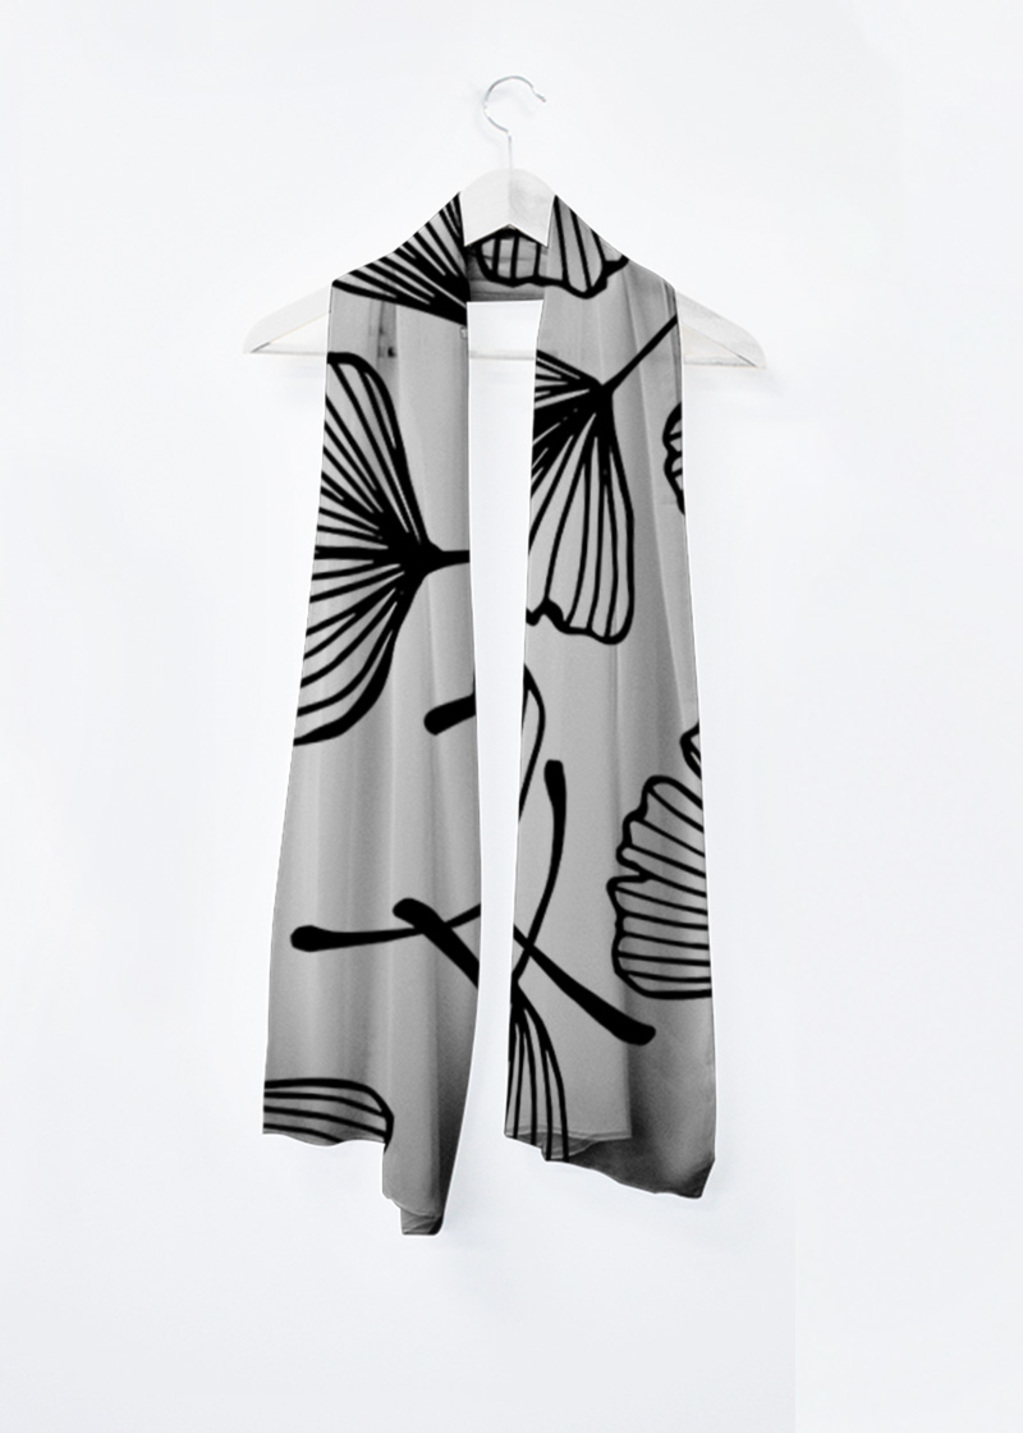 Picture of Ginko leaves silhouette Ginkgo Floral Japanese outline black and white ornament. Vivienne Scarf